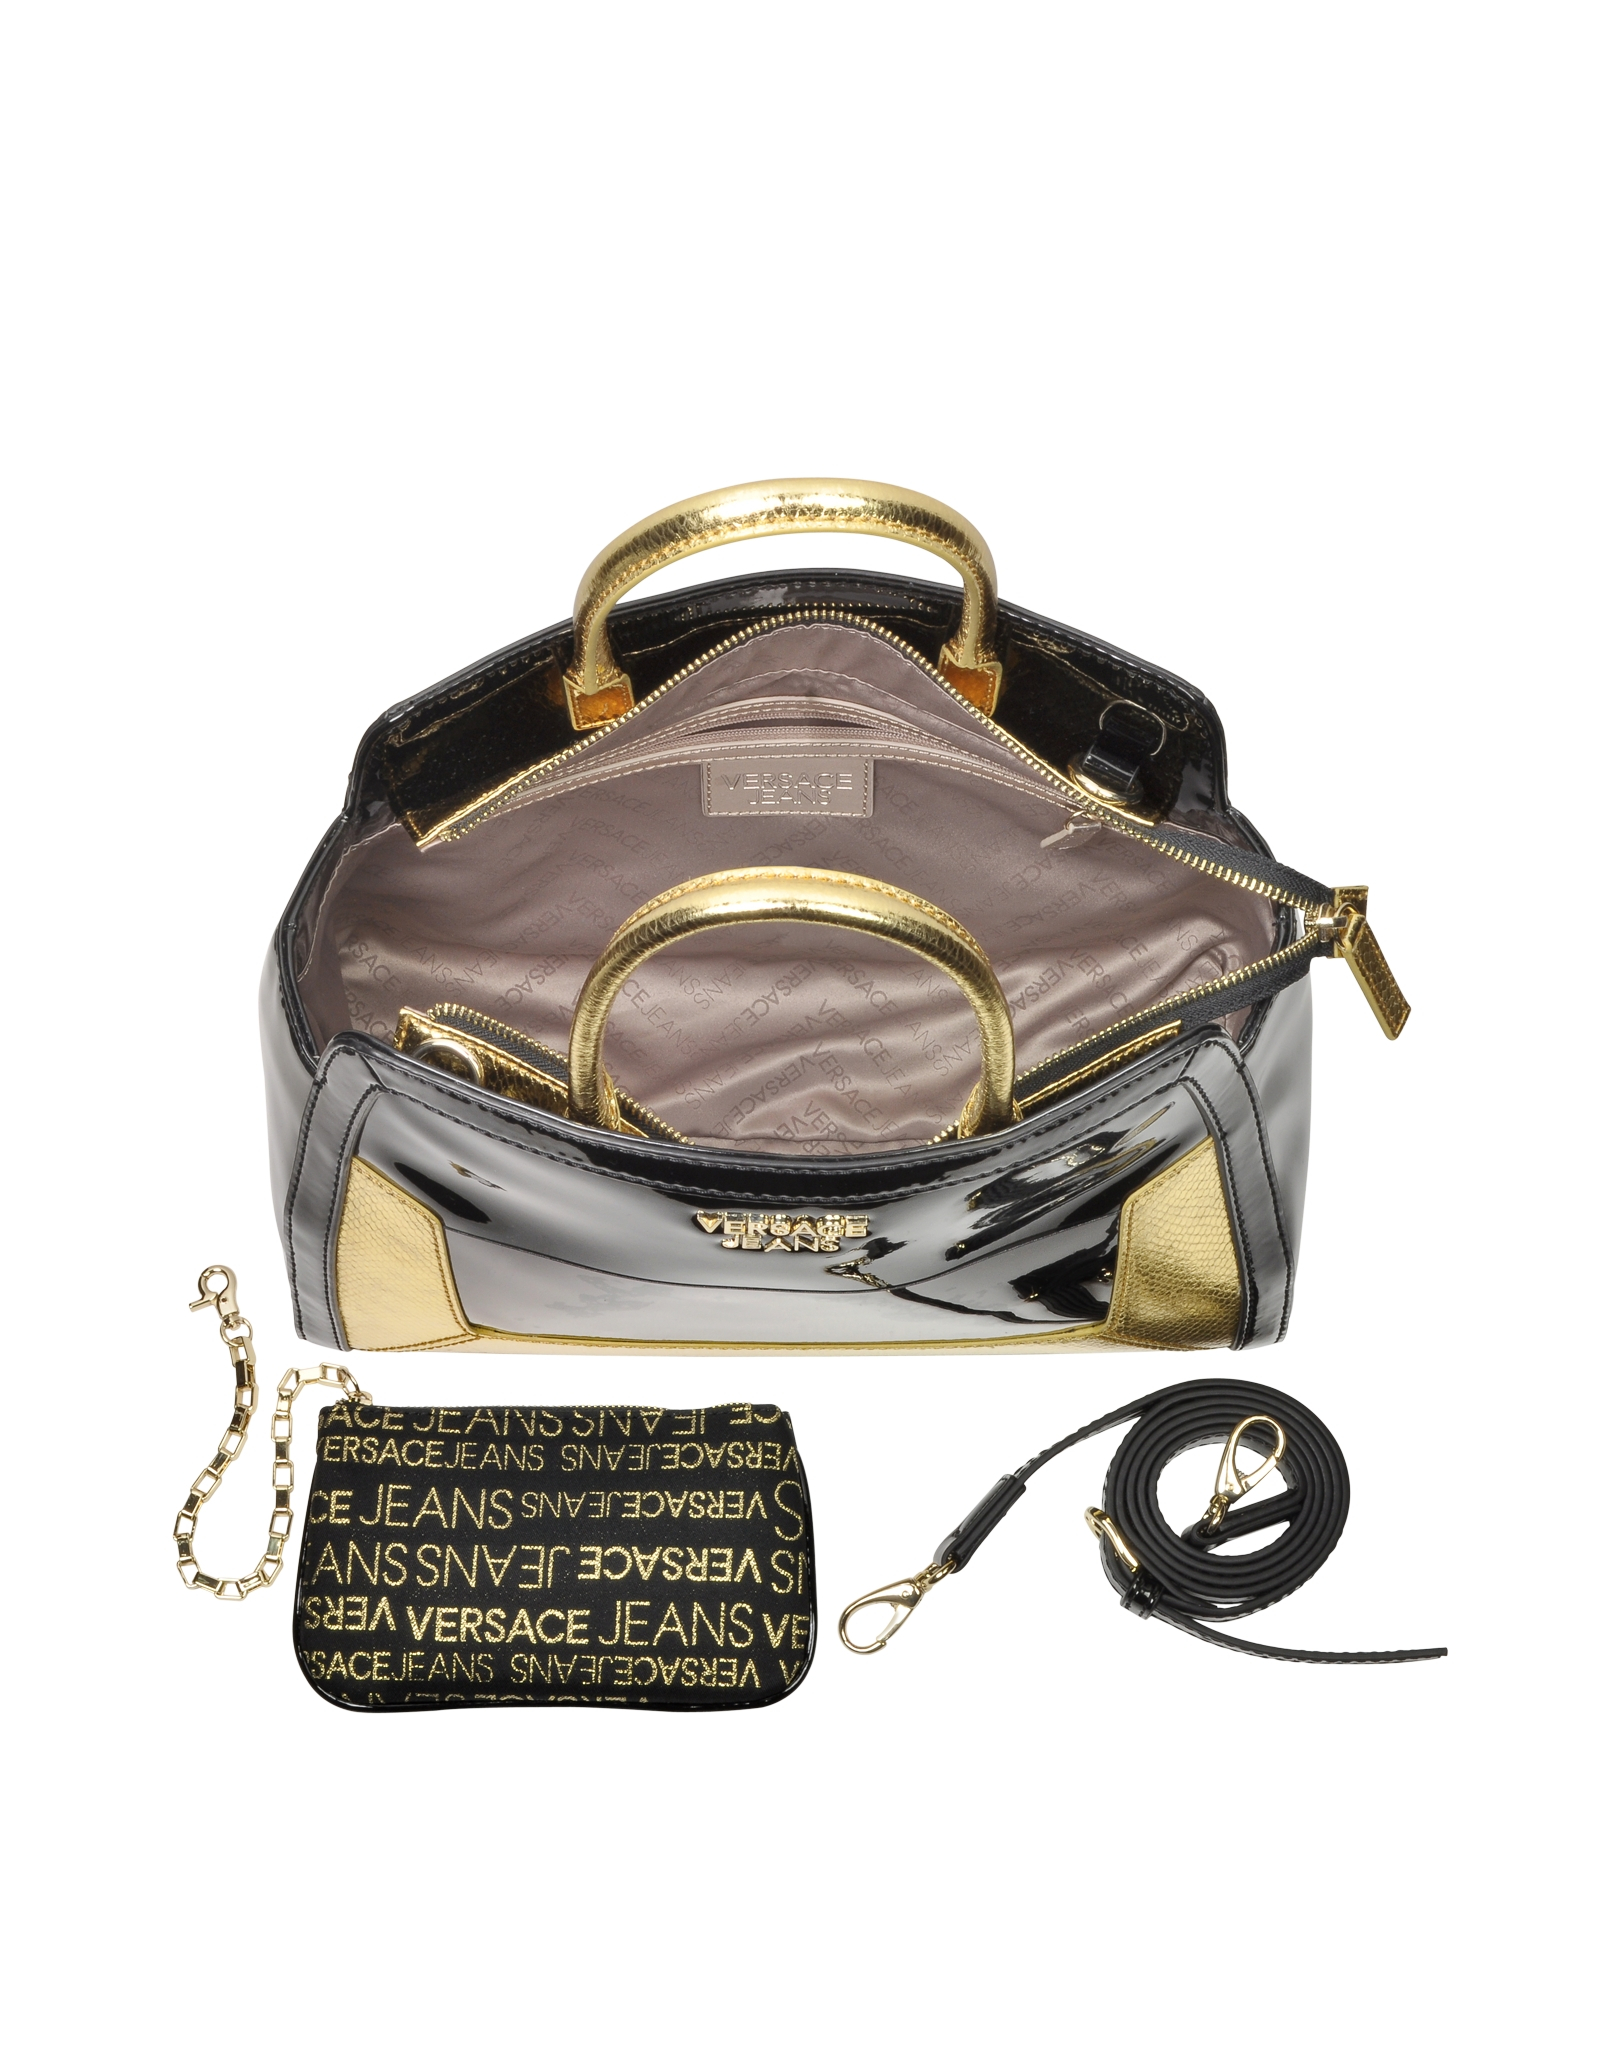 Versace Jeans Black Patent Eco Leather and Gold Python Stamped ... 876ef1b435e22